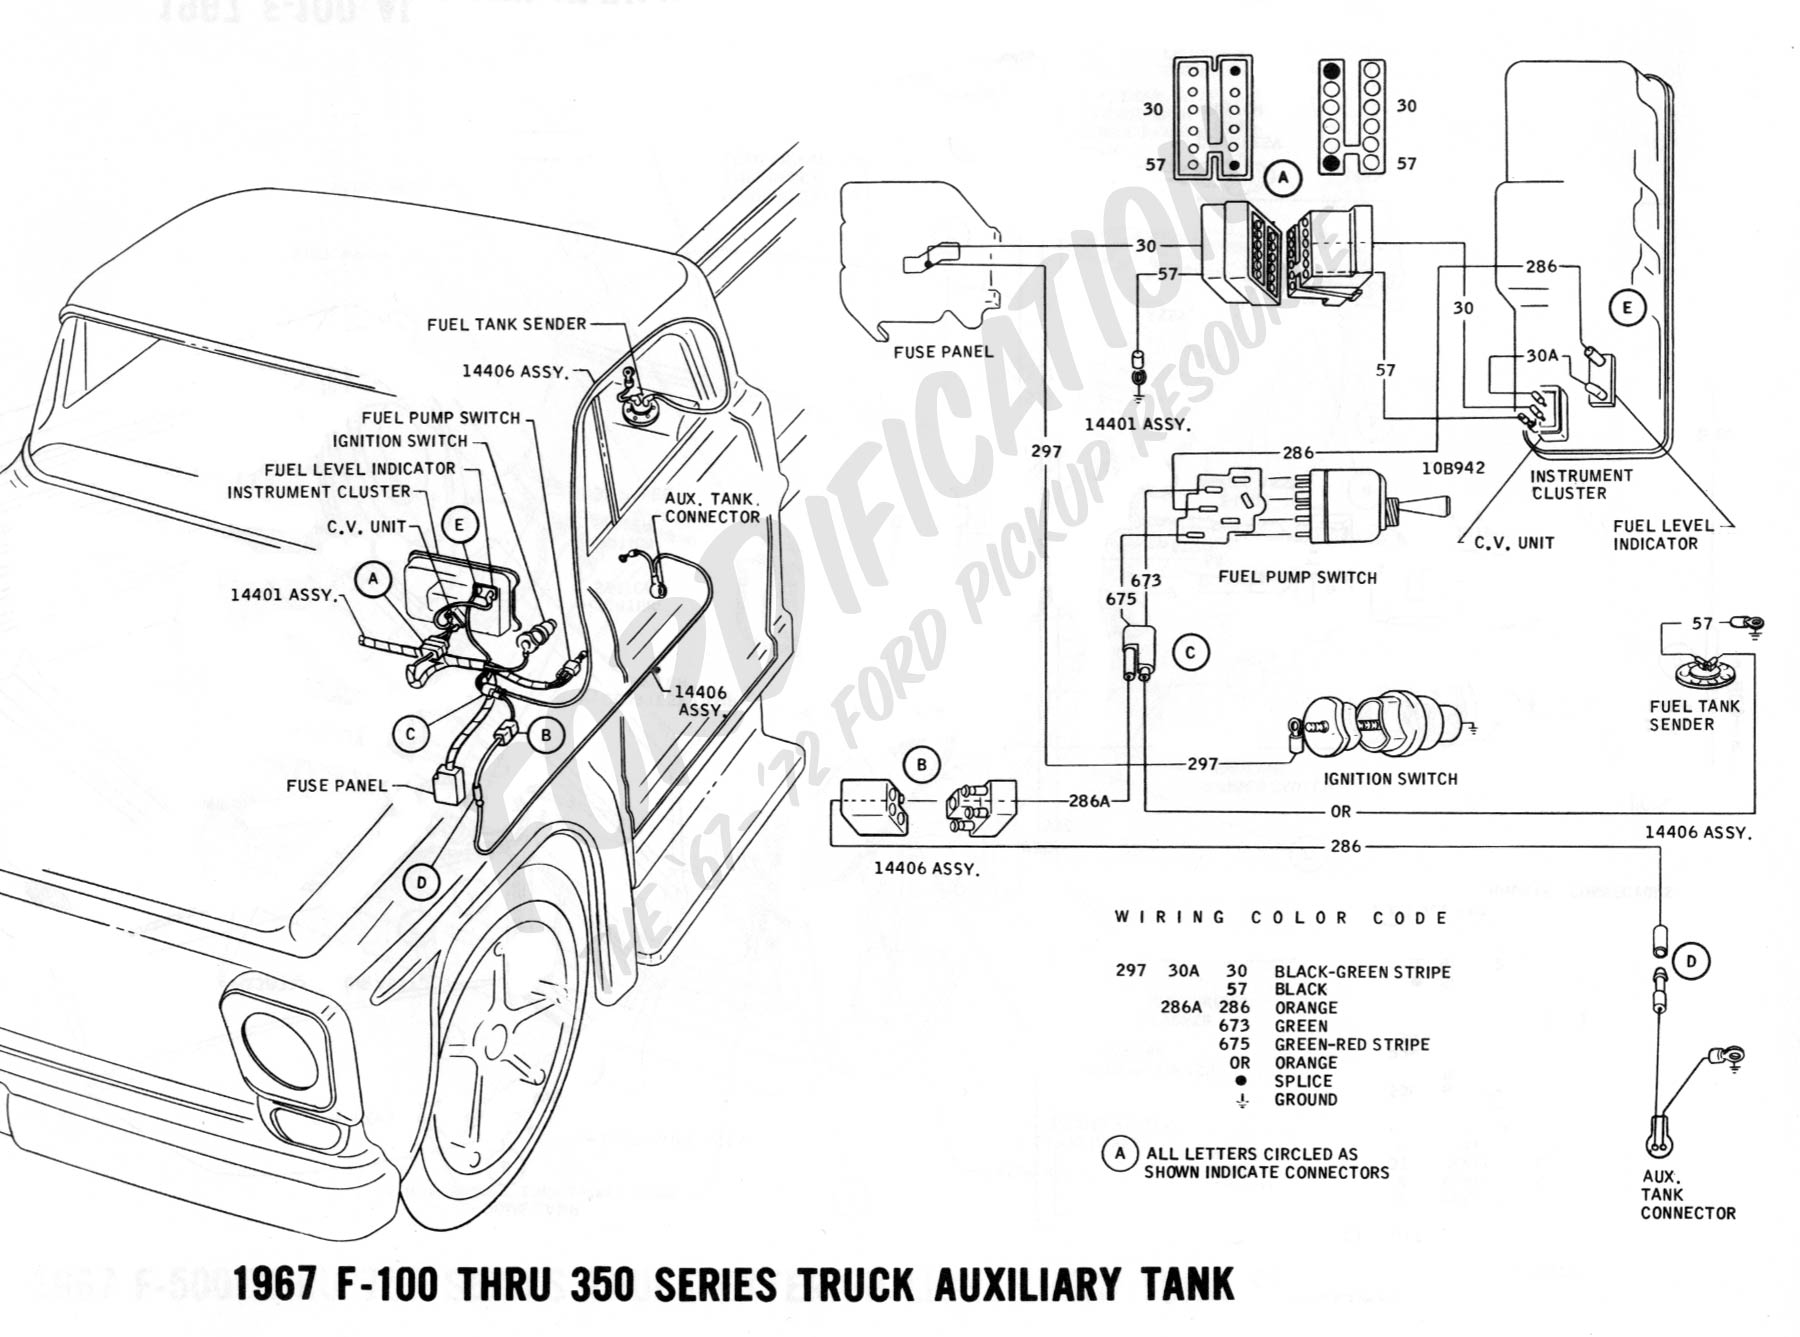 72 ford f100 dash wiring diagram suburban water heater truck technical drawings and schematics section h